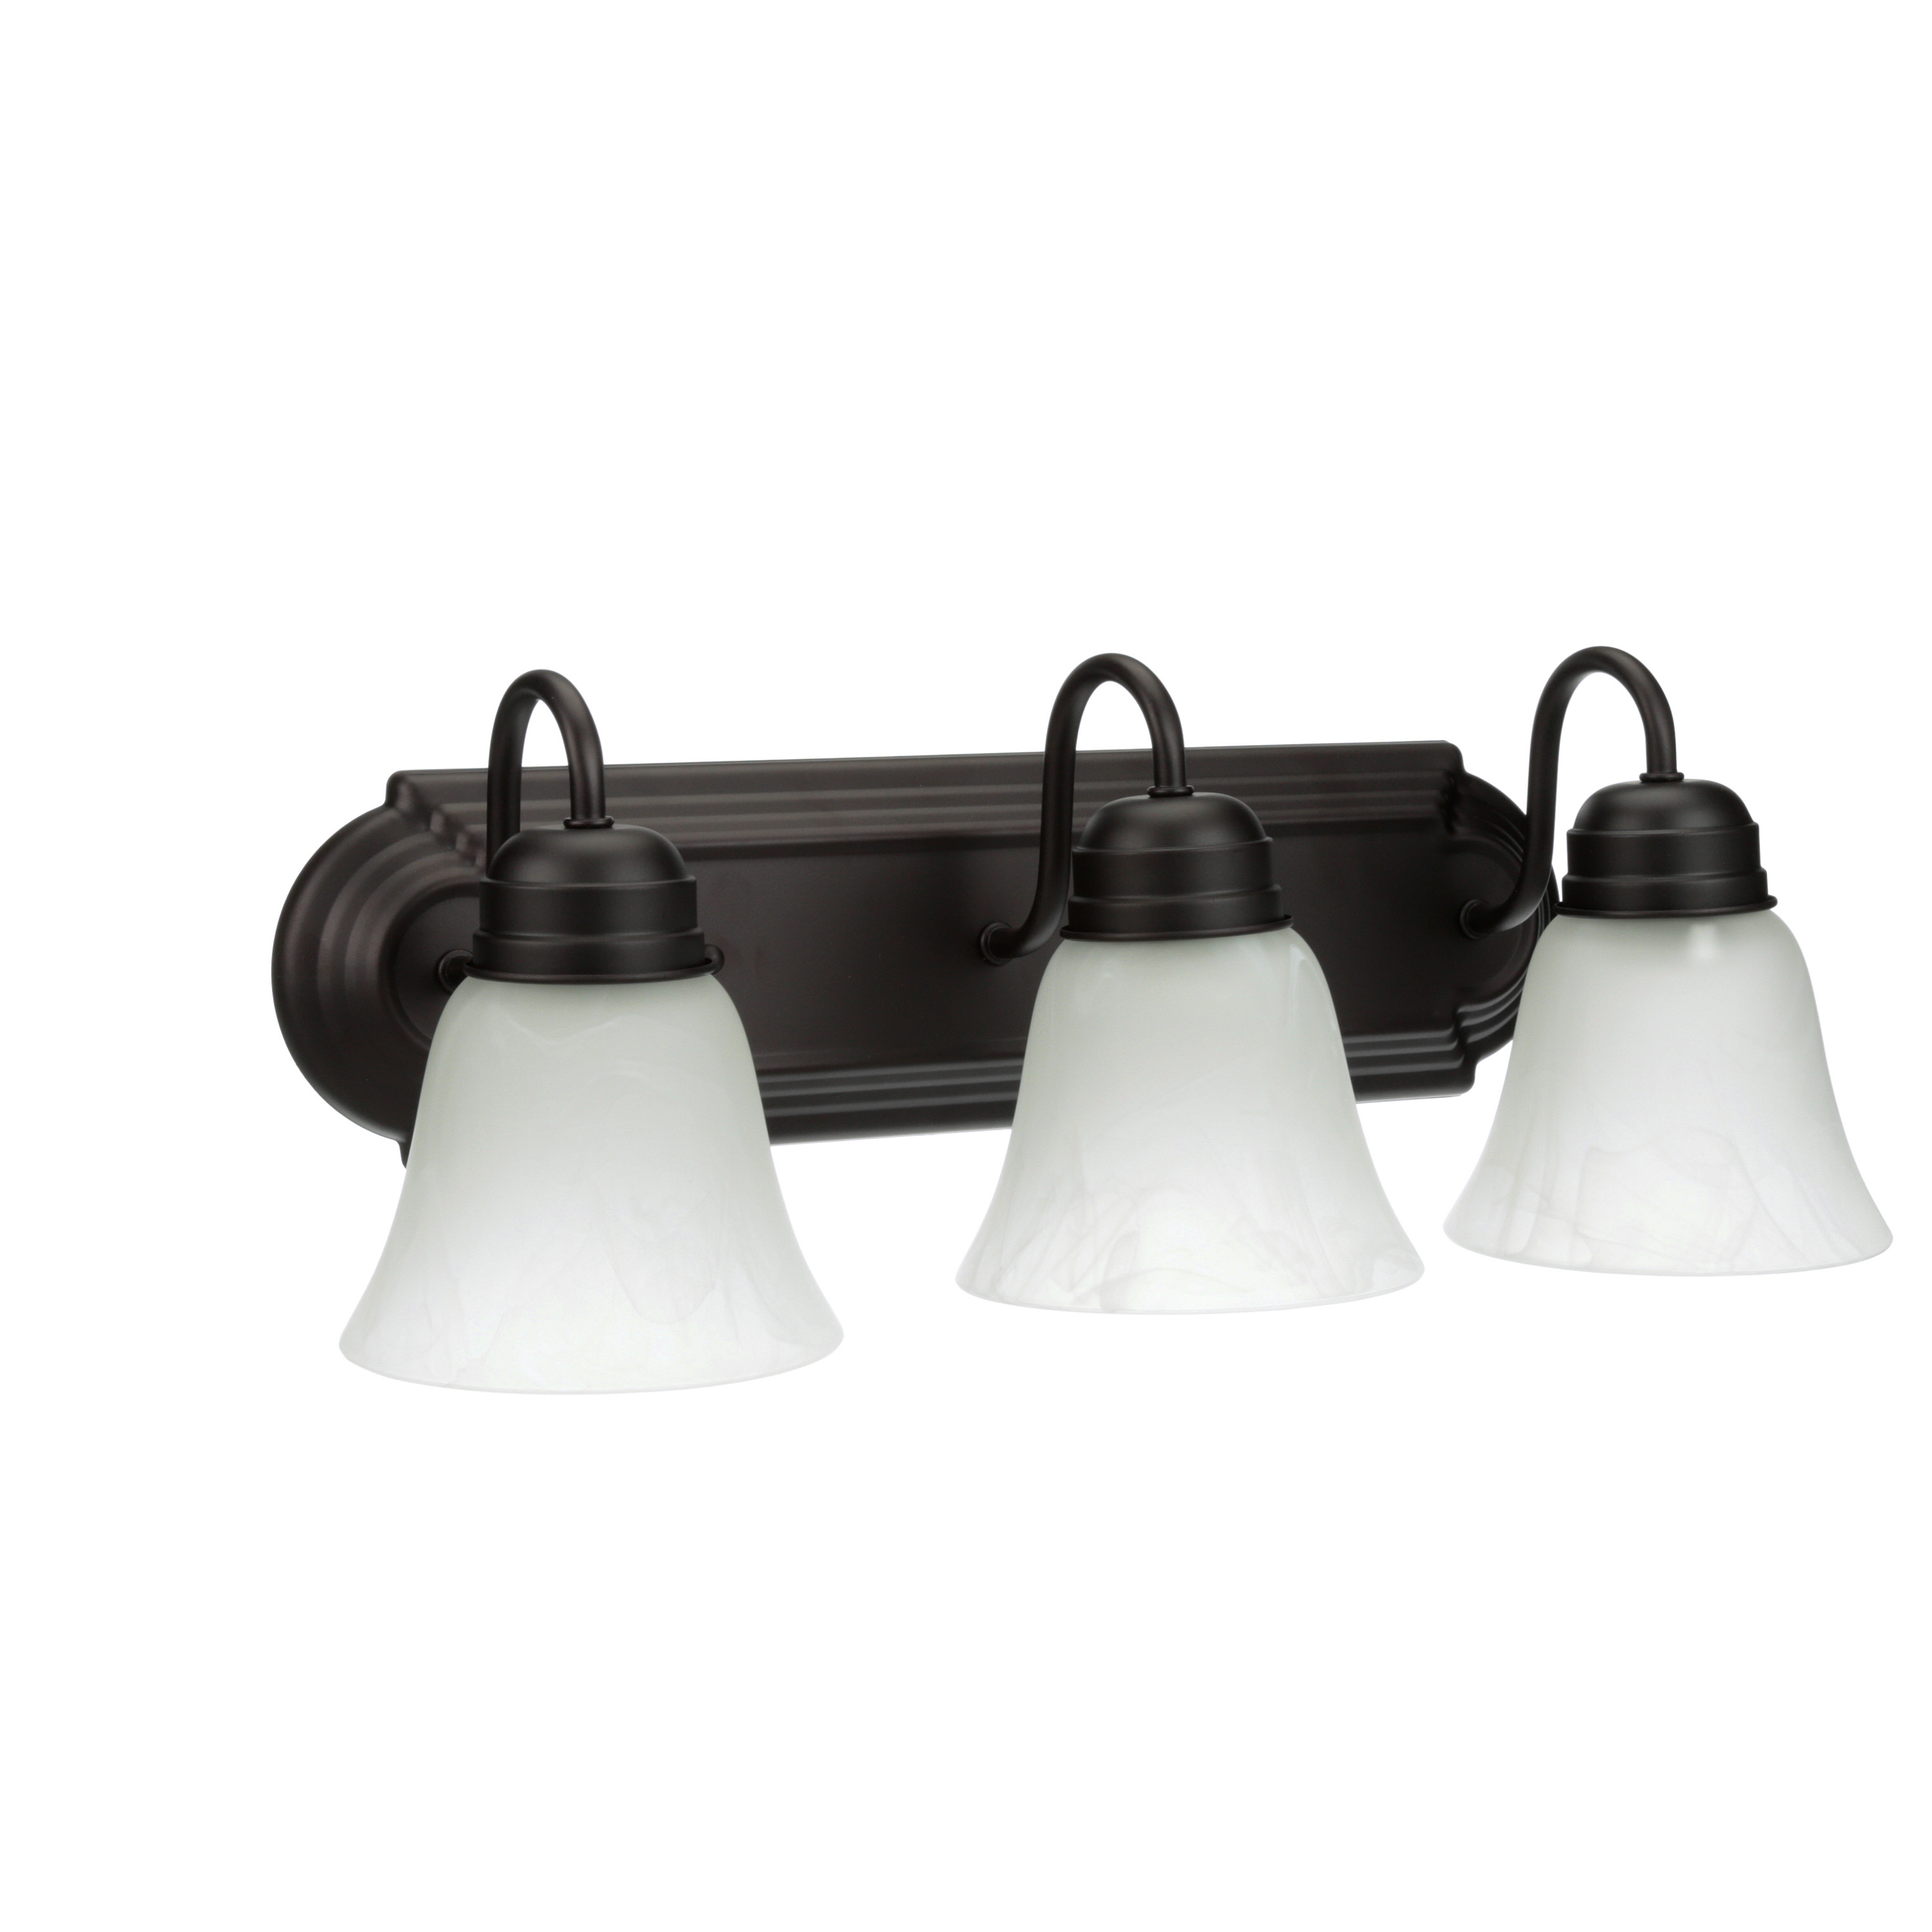 Chapter 3 Light Bathroom Vanity Light With LED Bulbs, Oil Rubbed Bronze